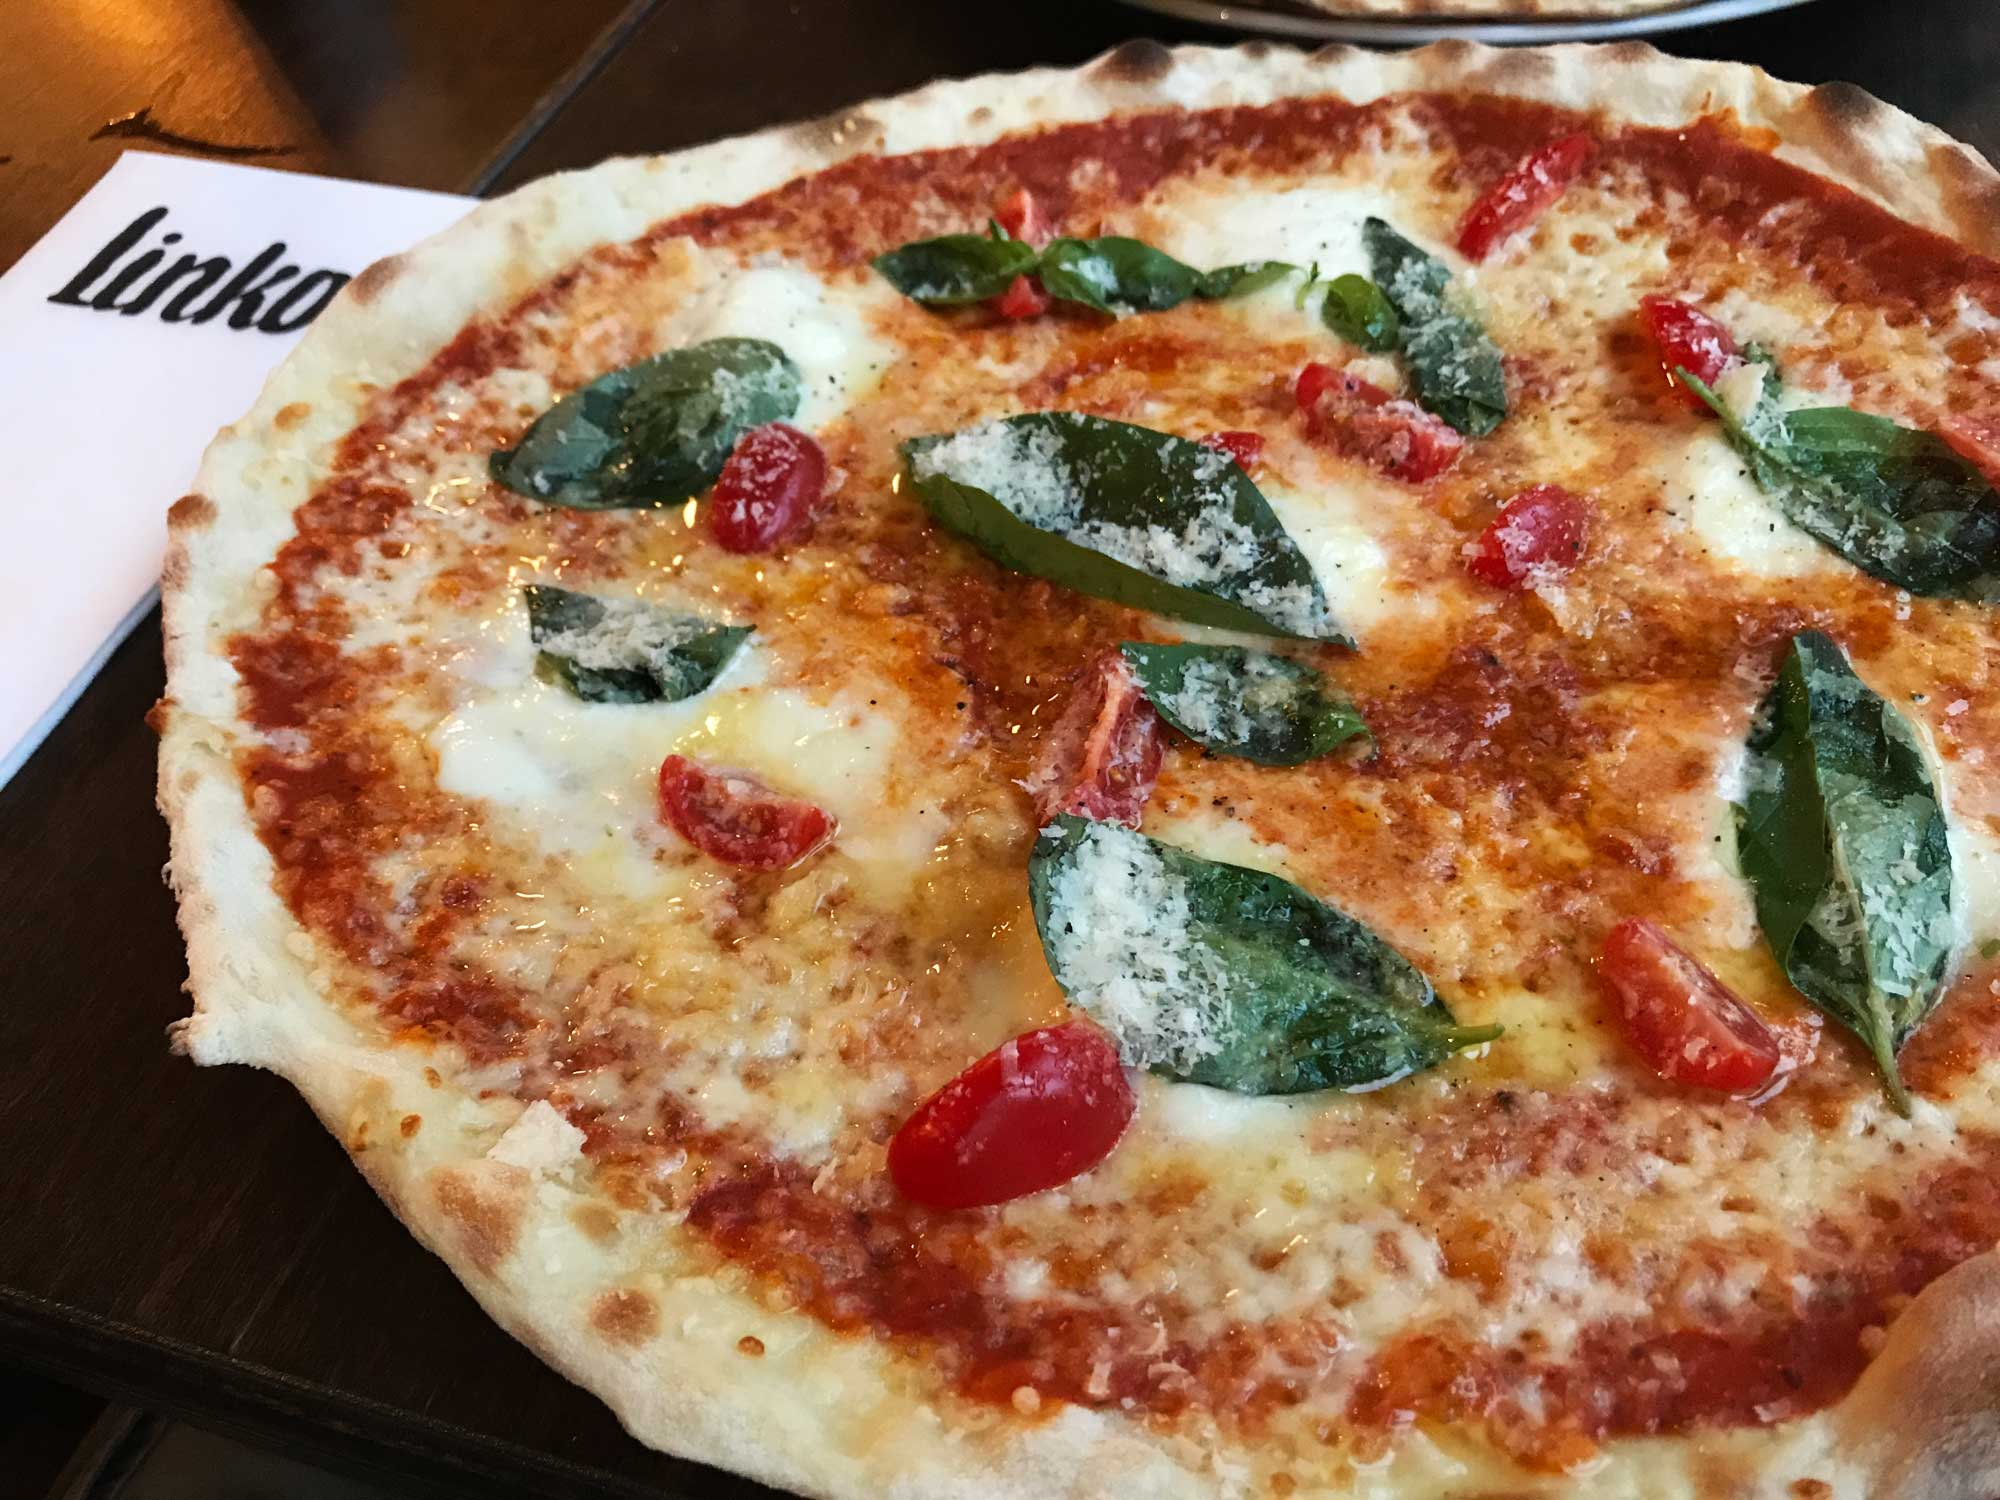 Linko - One of the pizzas in Helsinki - Screw Them All - Blog